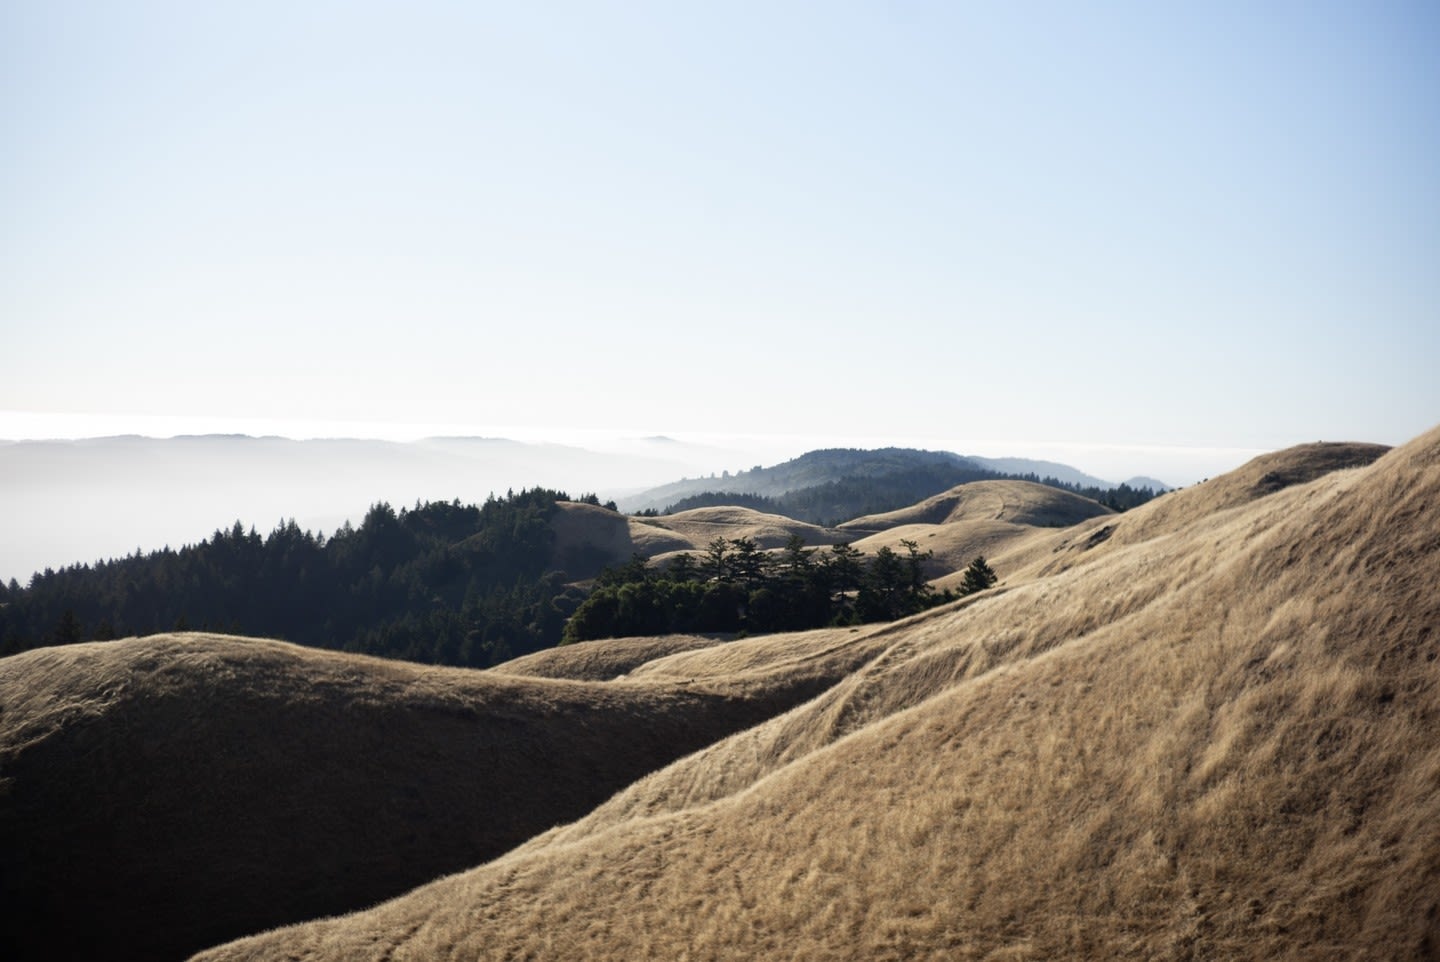 Jul 15, 2018 - Mount Tam + Stinson Beach: 9